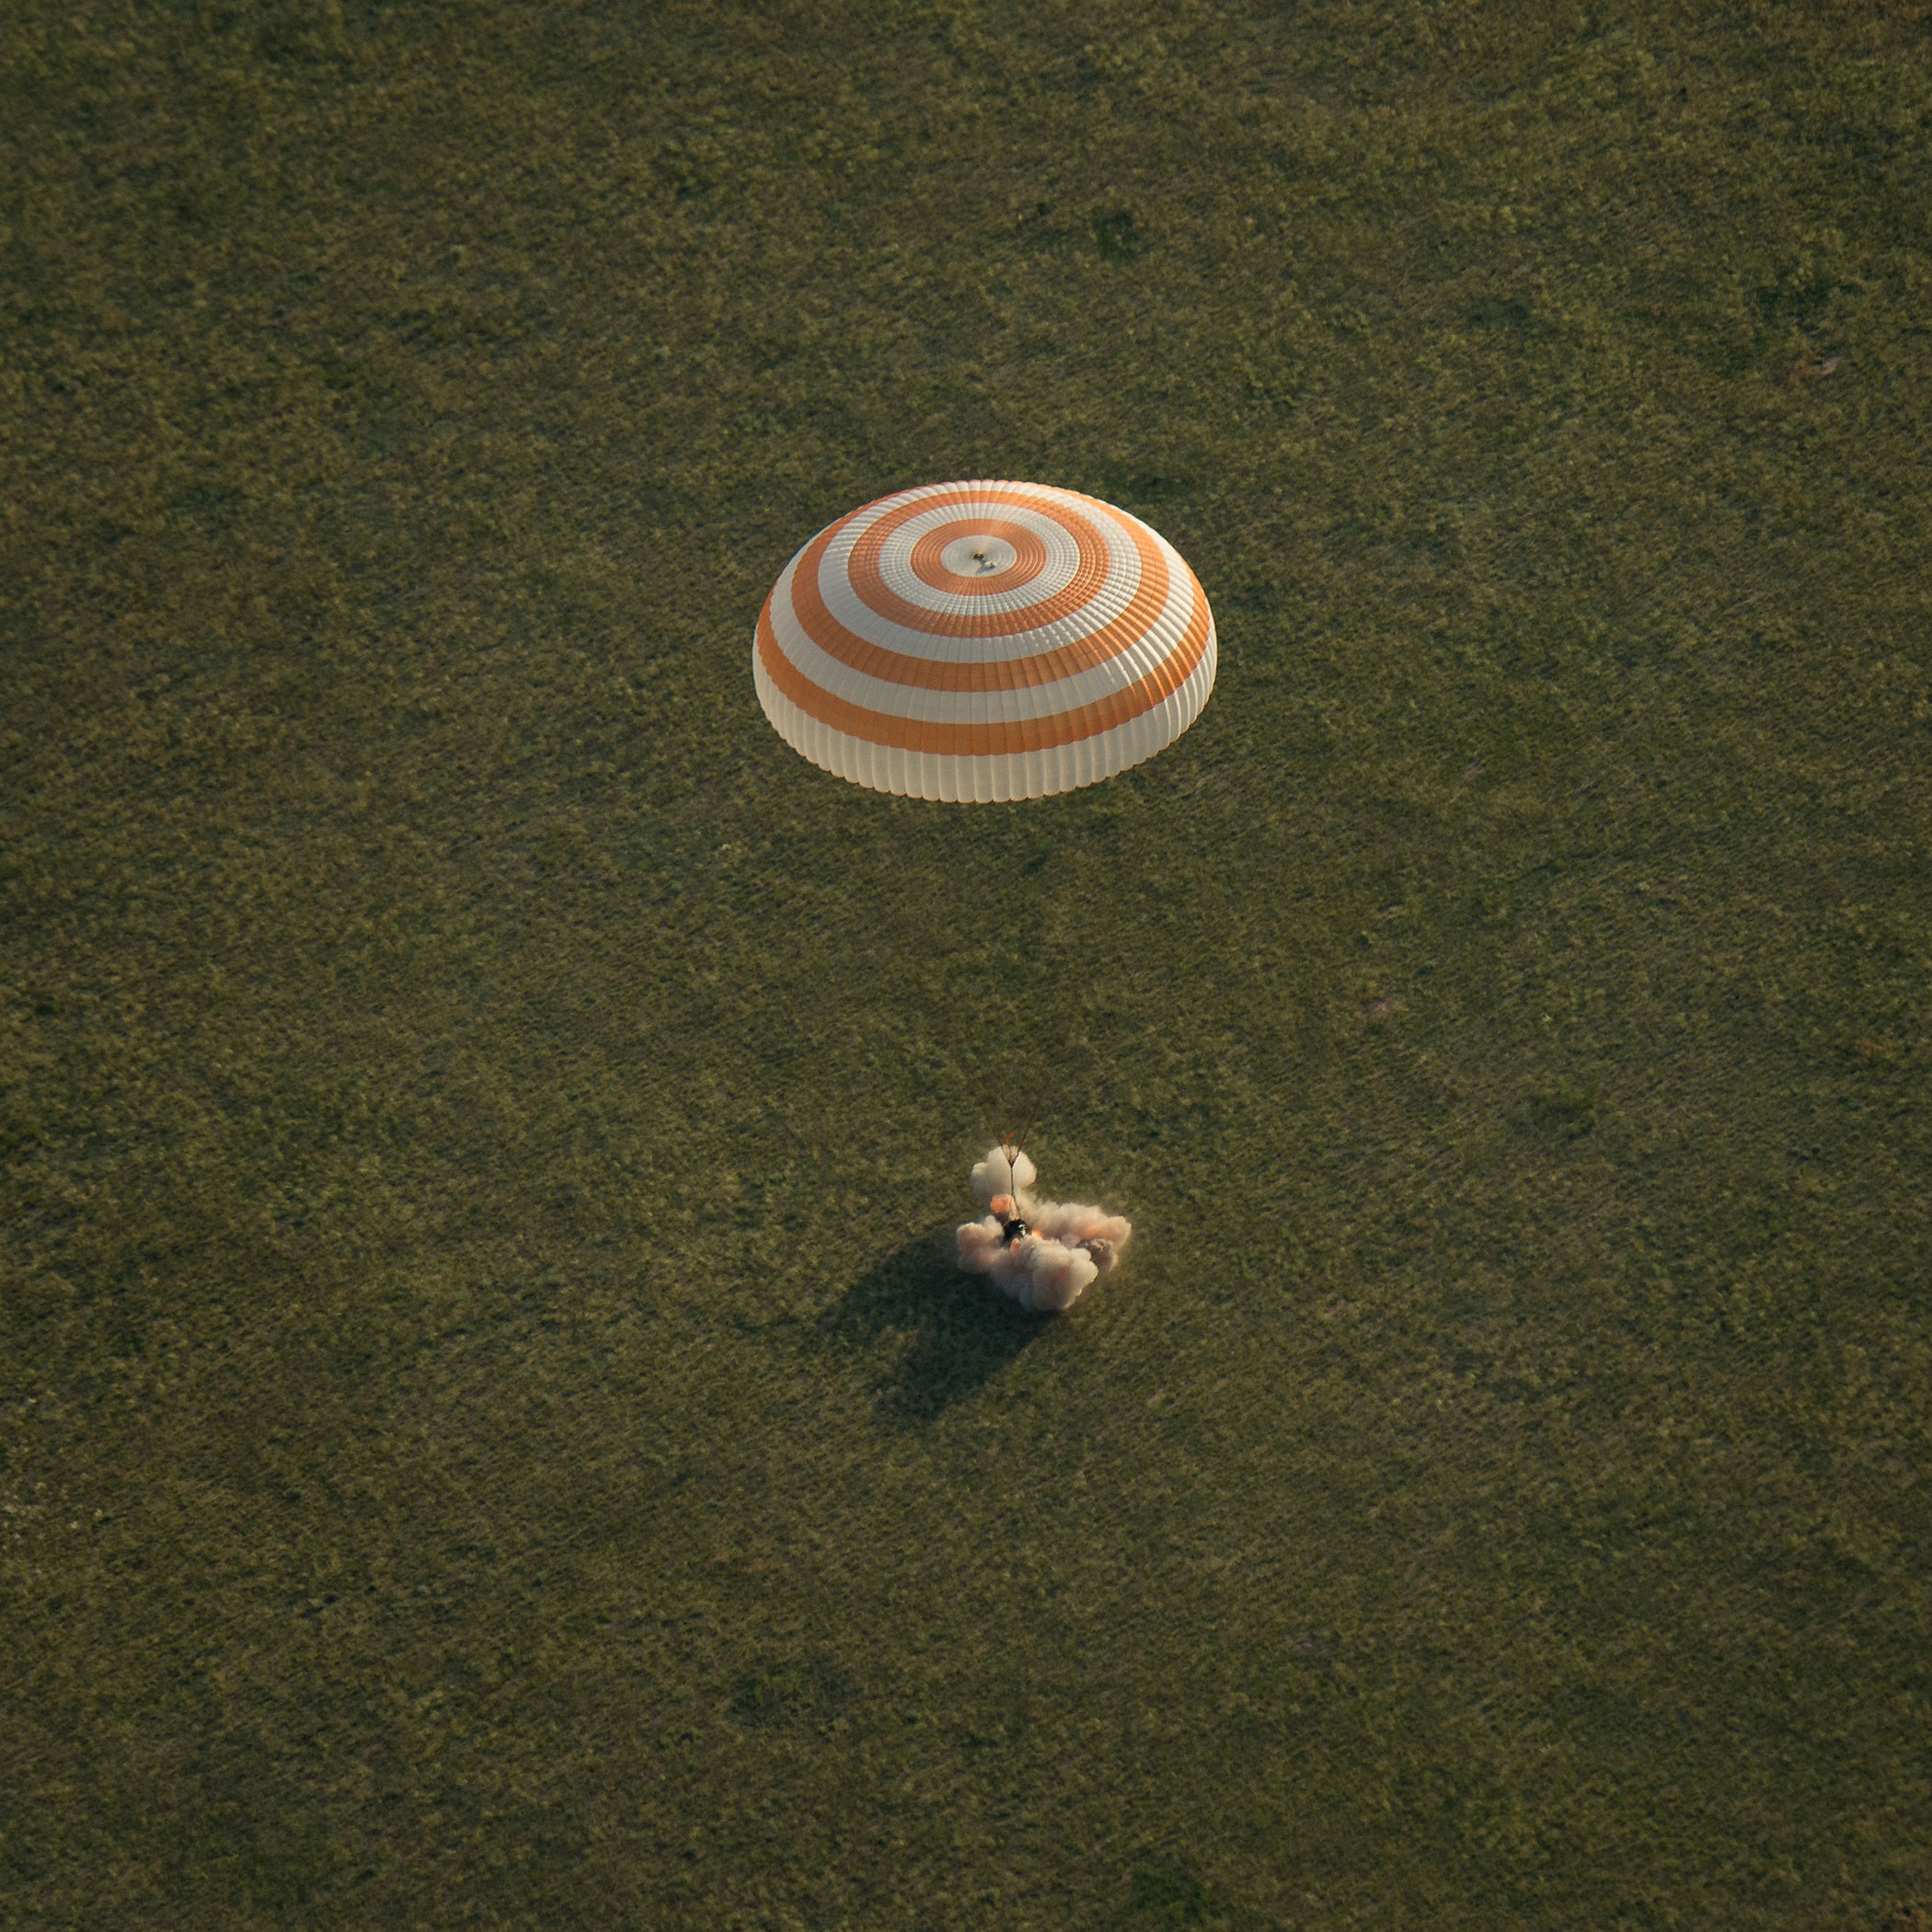 A Soyuz spacecraft returning from the International Space Station lands in Kazakhstan on June 11, 2015, with NASA astronaut Terry Virts, Russian cosmonaut Anton Shkaplerov, and Italian astronaut Samantha Cristoforetti of the European Space Agency aboard. The burst of fire and smoke at the point of impact comes from the braking rockets the Soyuz fires to ease the landing.